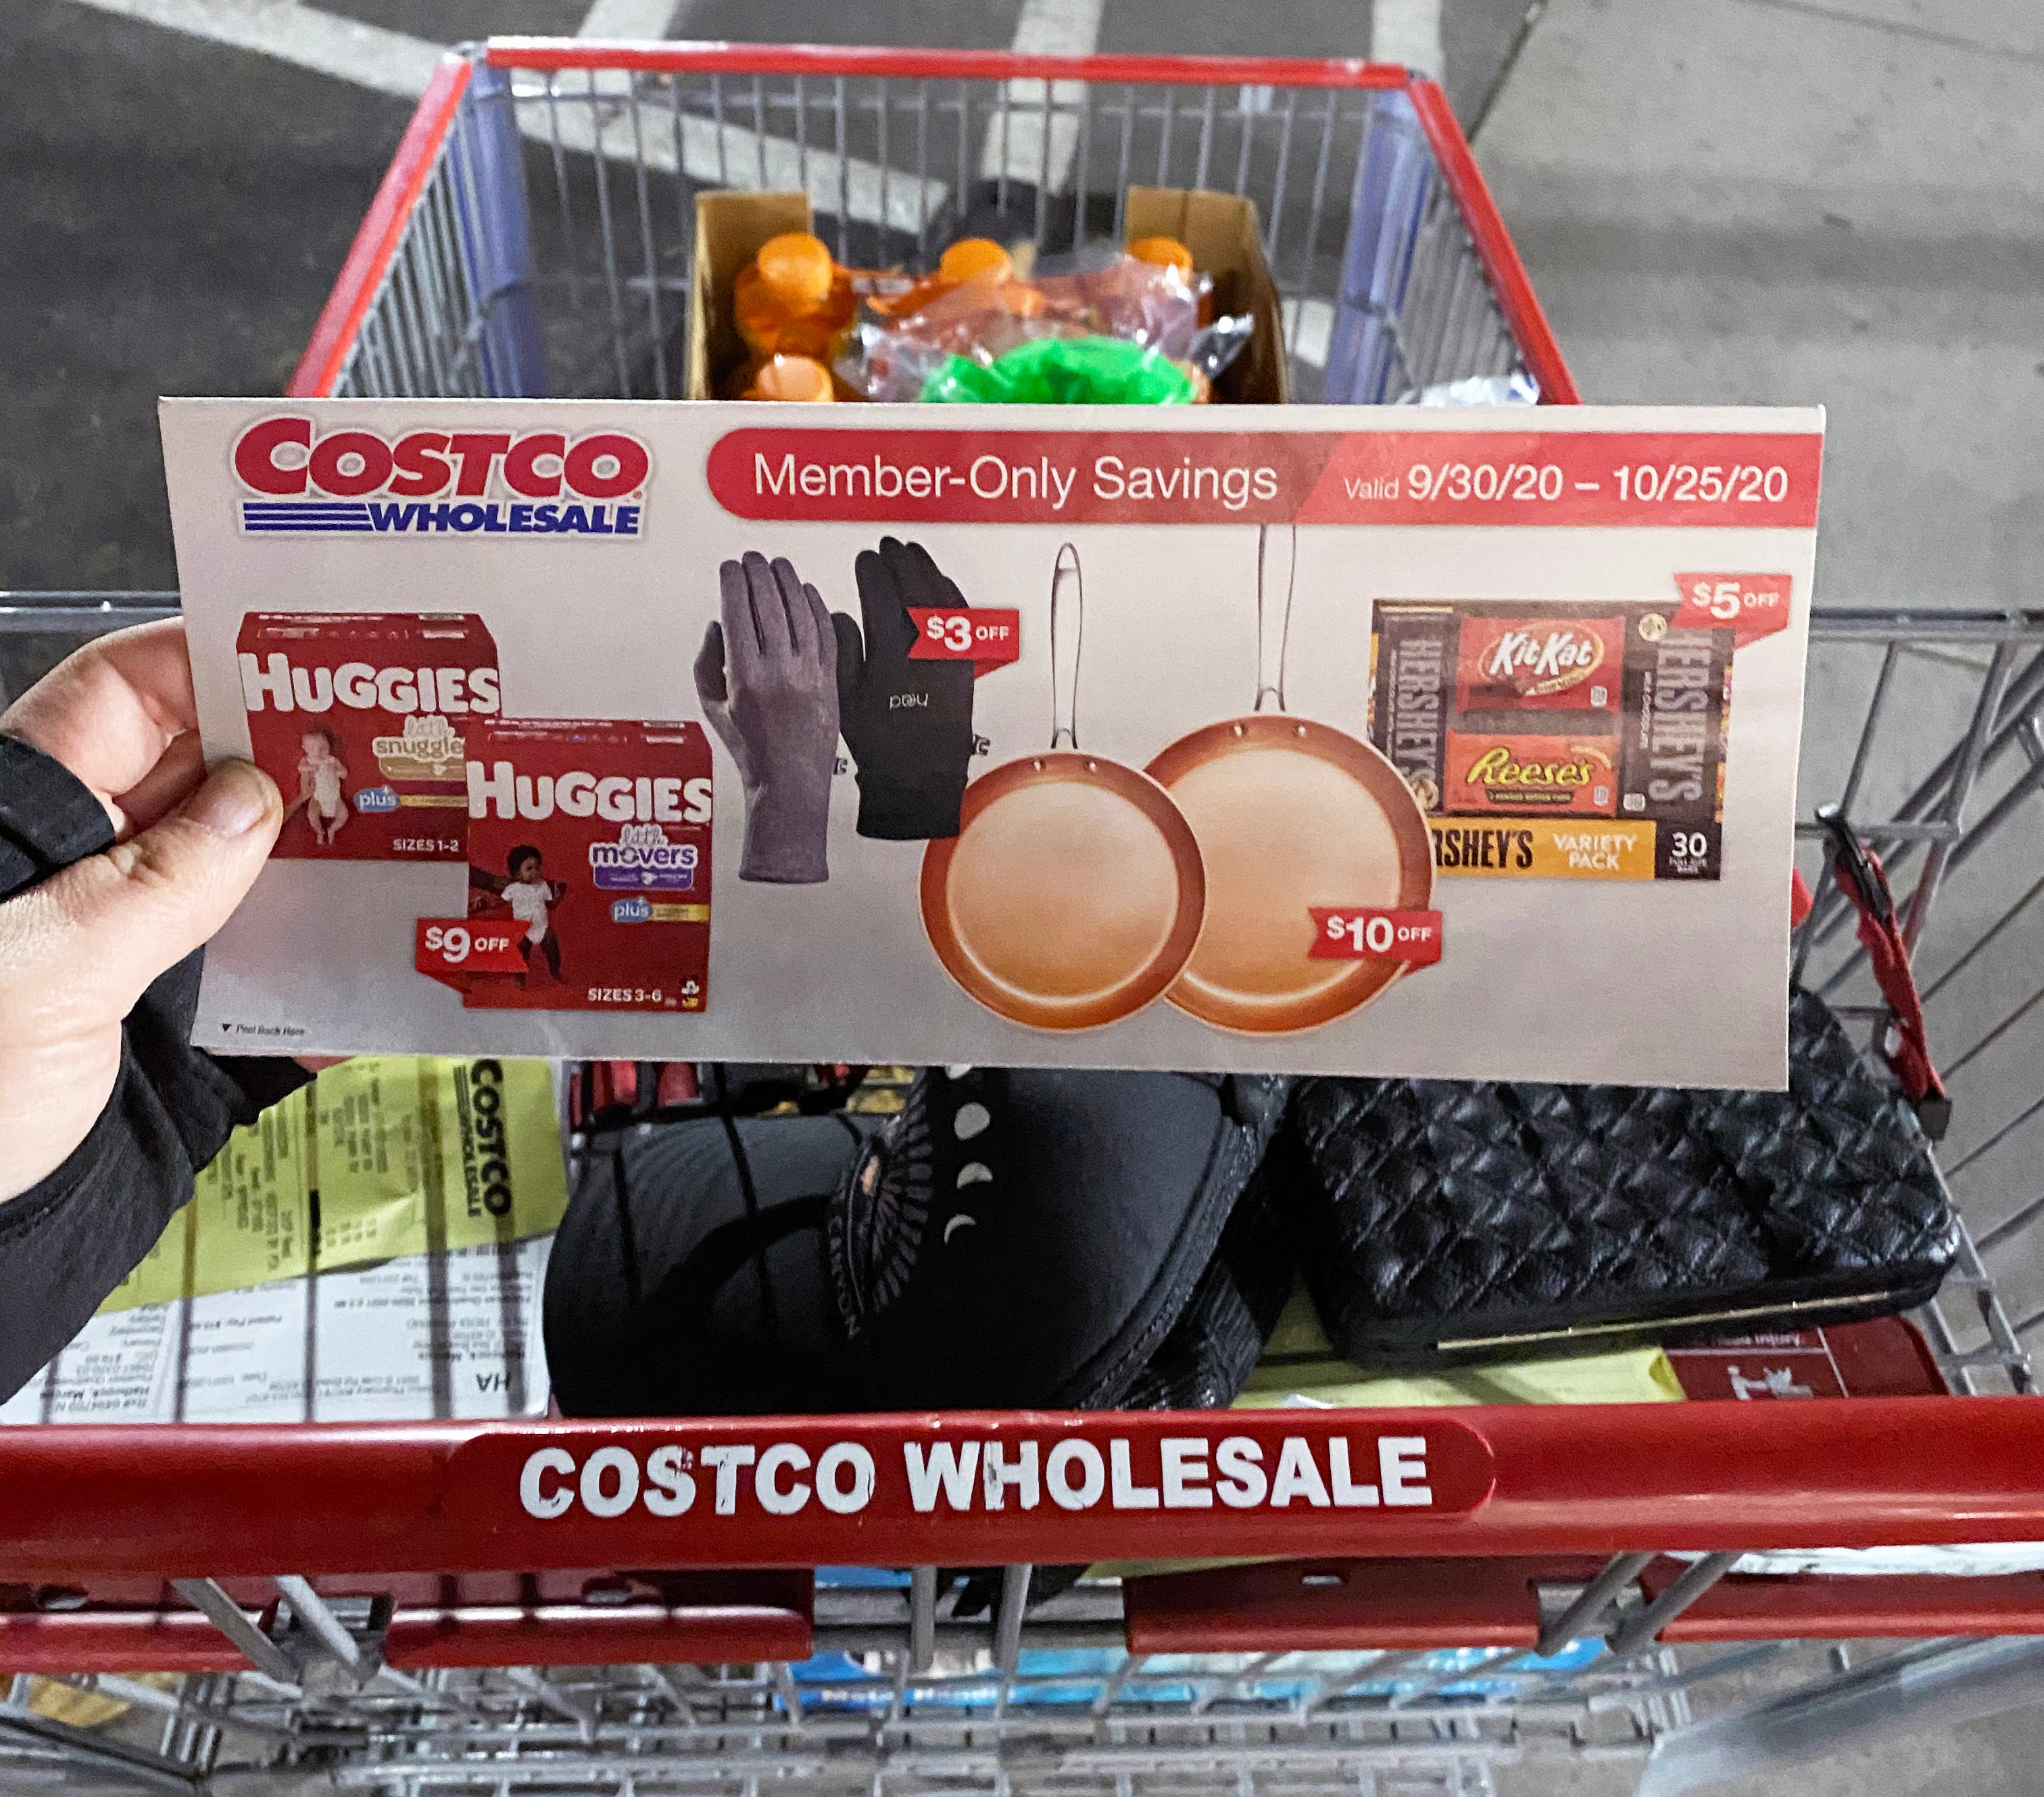 Costco October Coupon Book 2020 The Krazy Coupon Lady